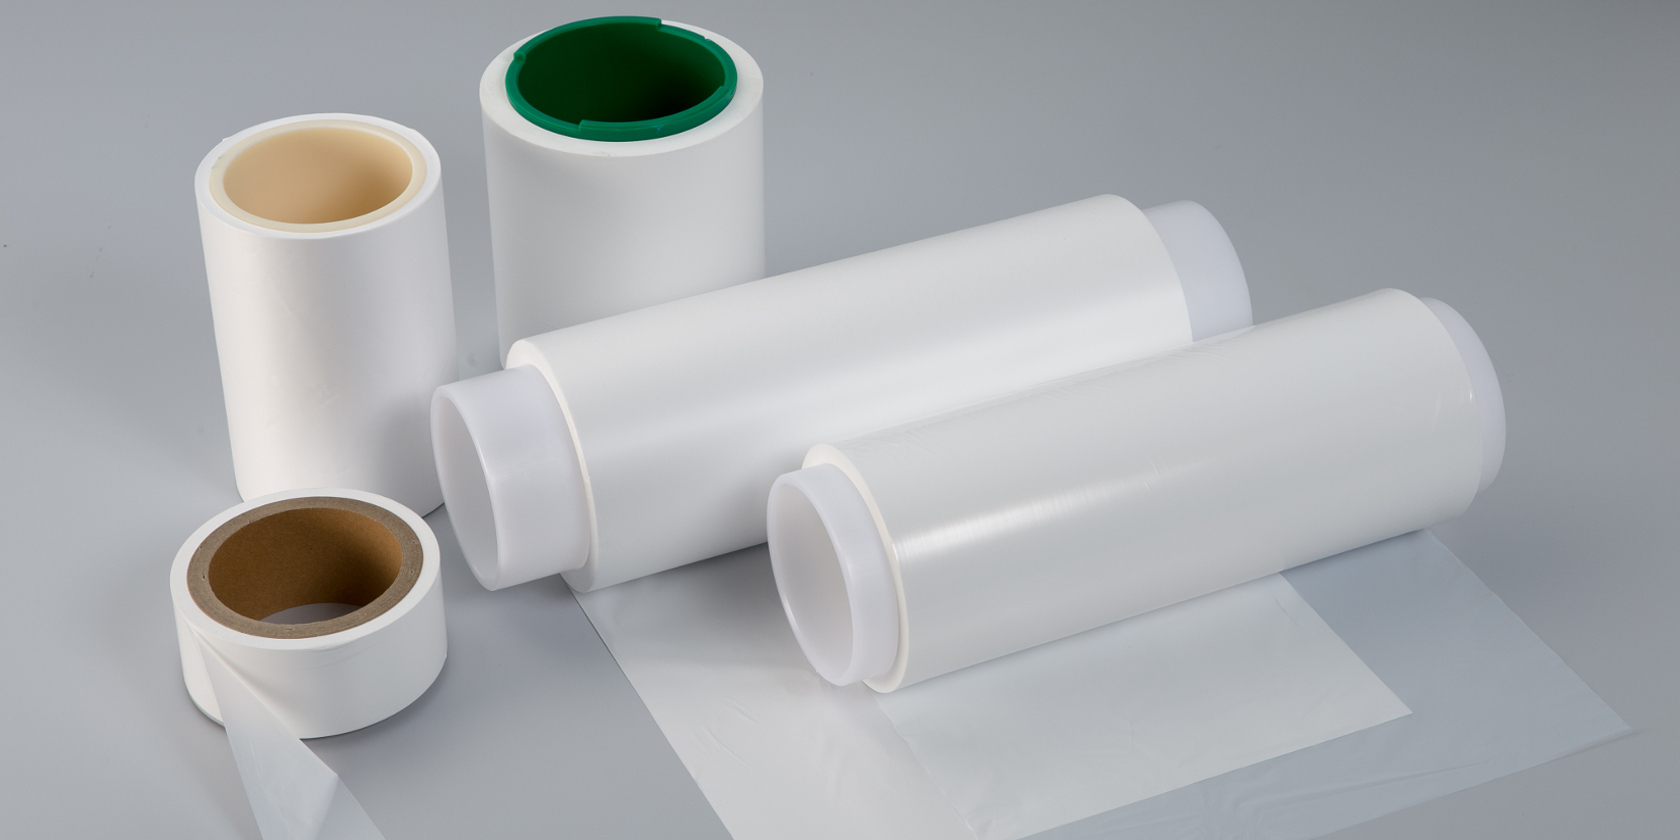 Teijin Considers Boosting Production of High-Performance Microporous Membrane